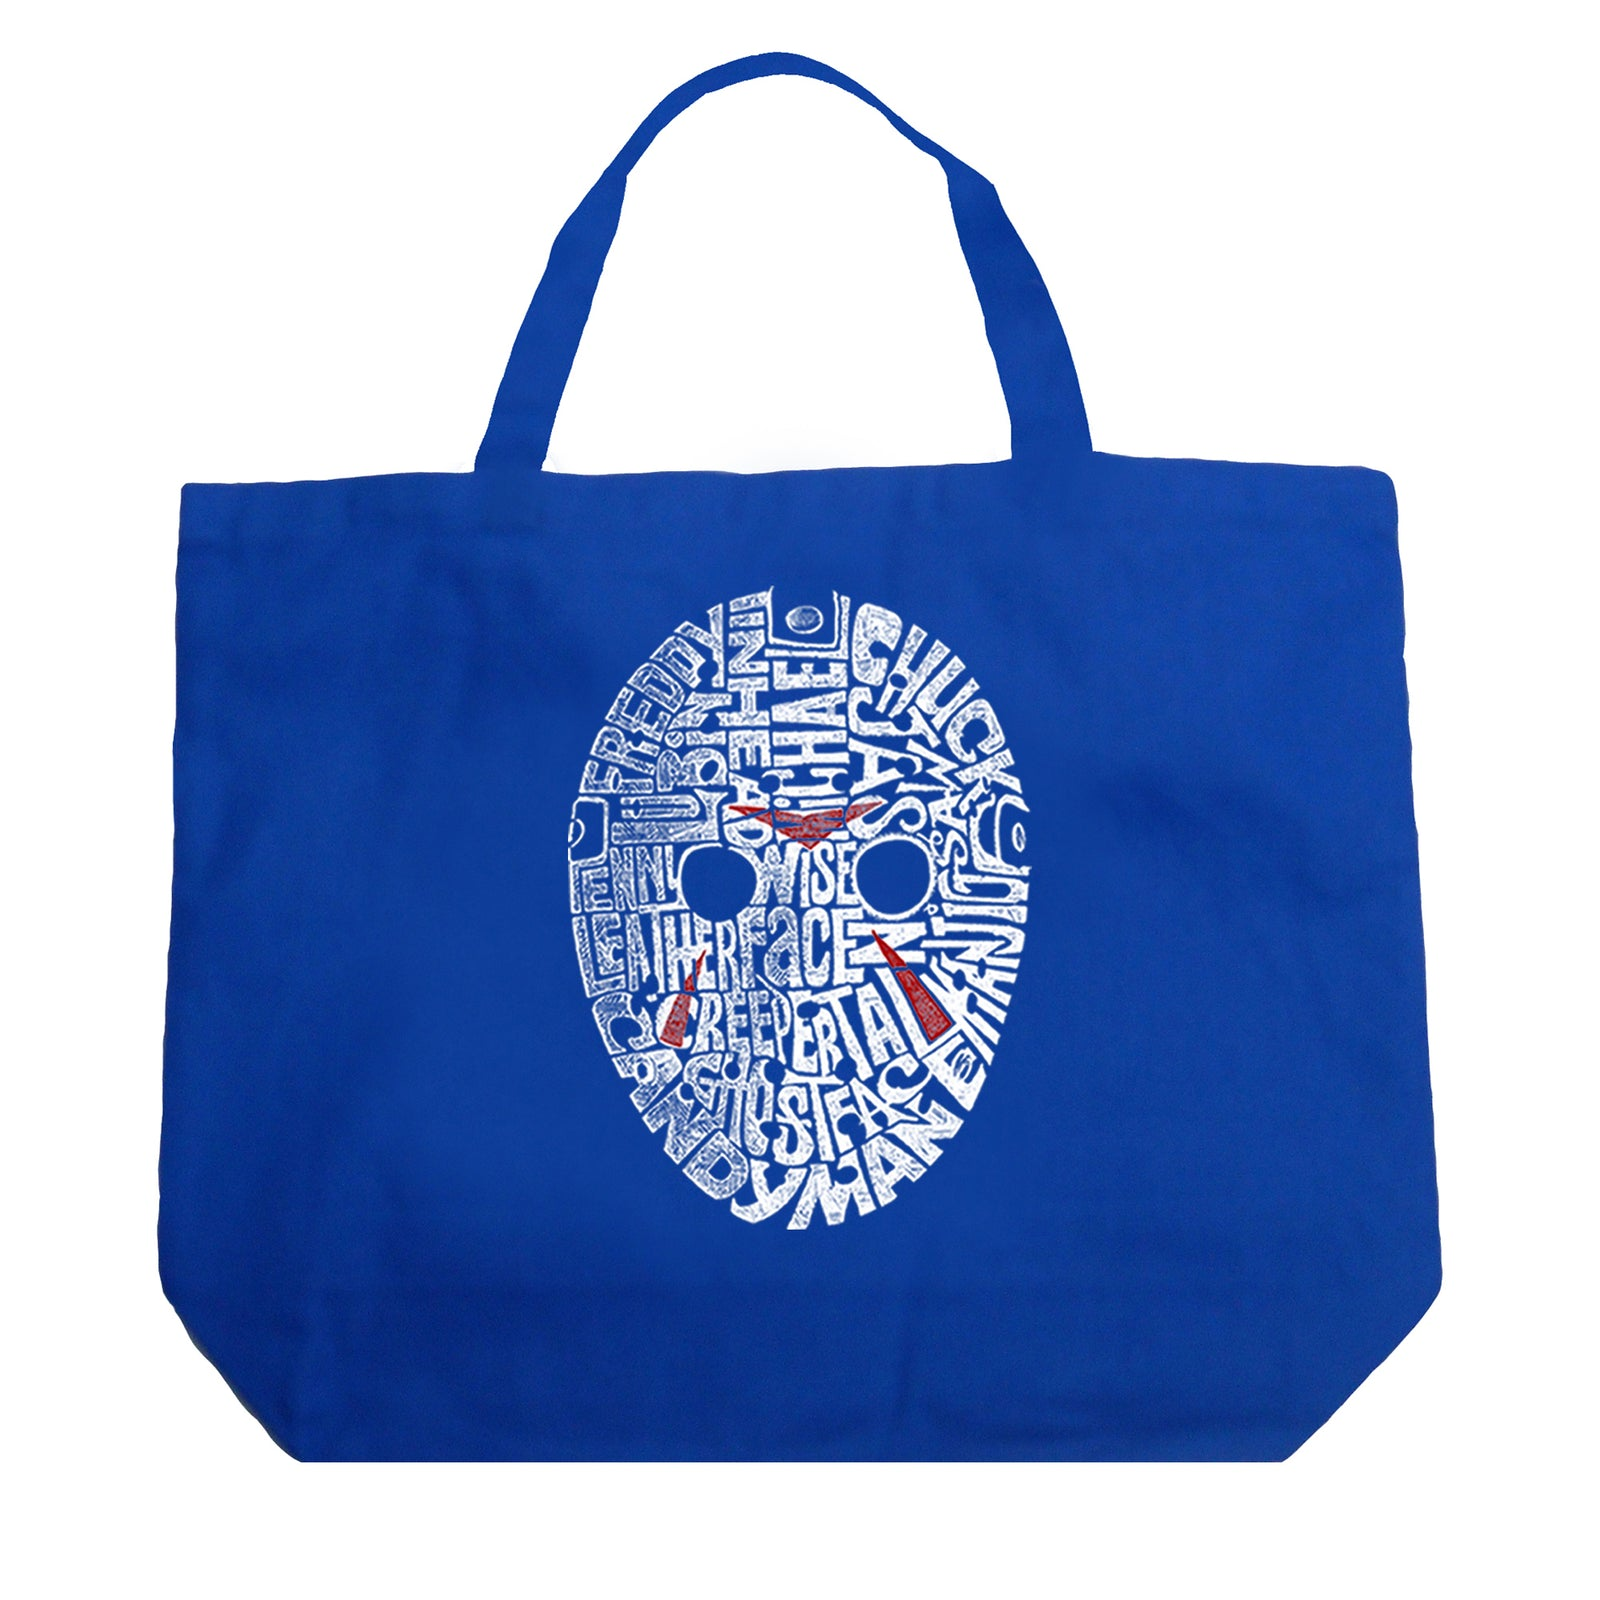 Large Tote Bag - Slasher Movie Villians